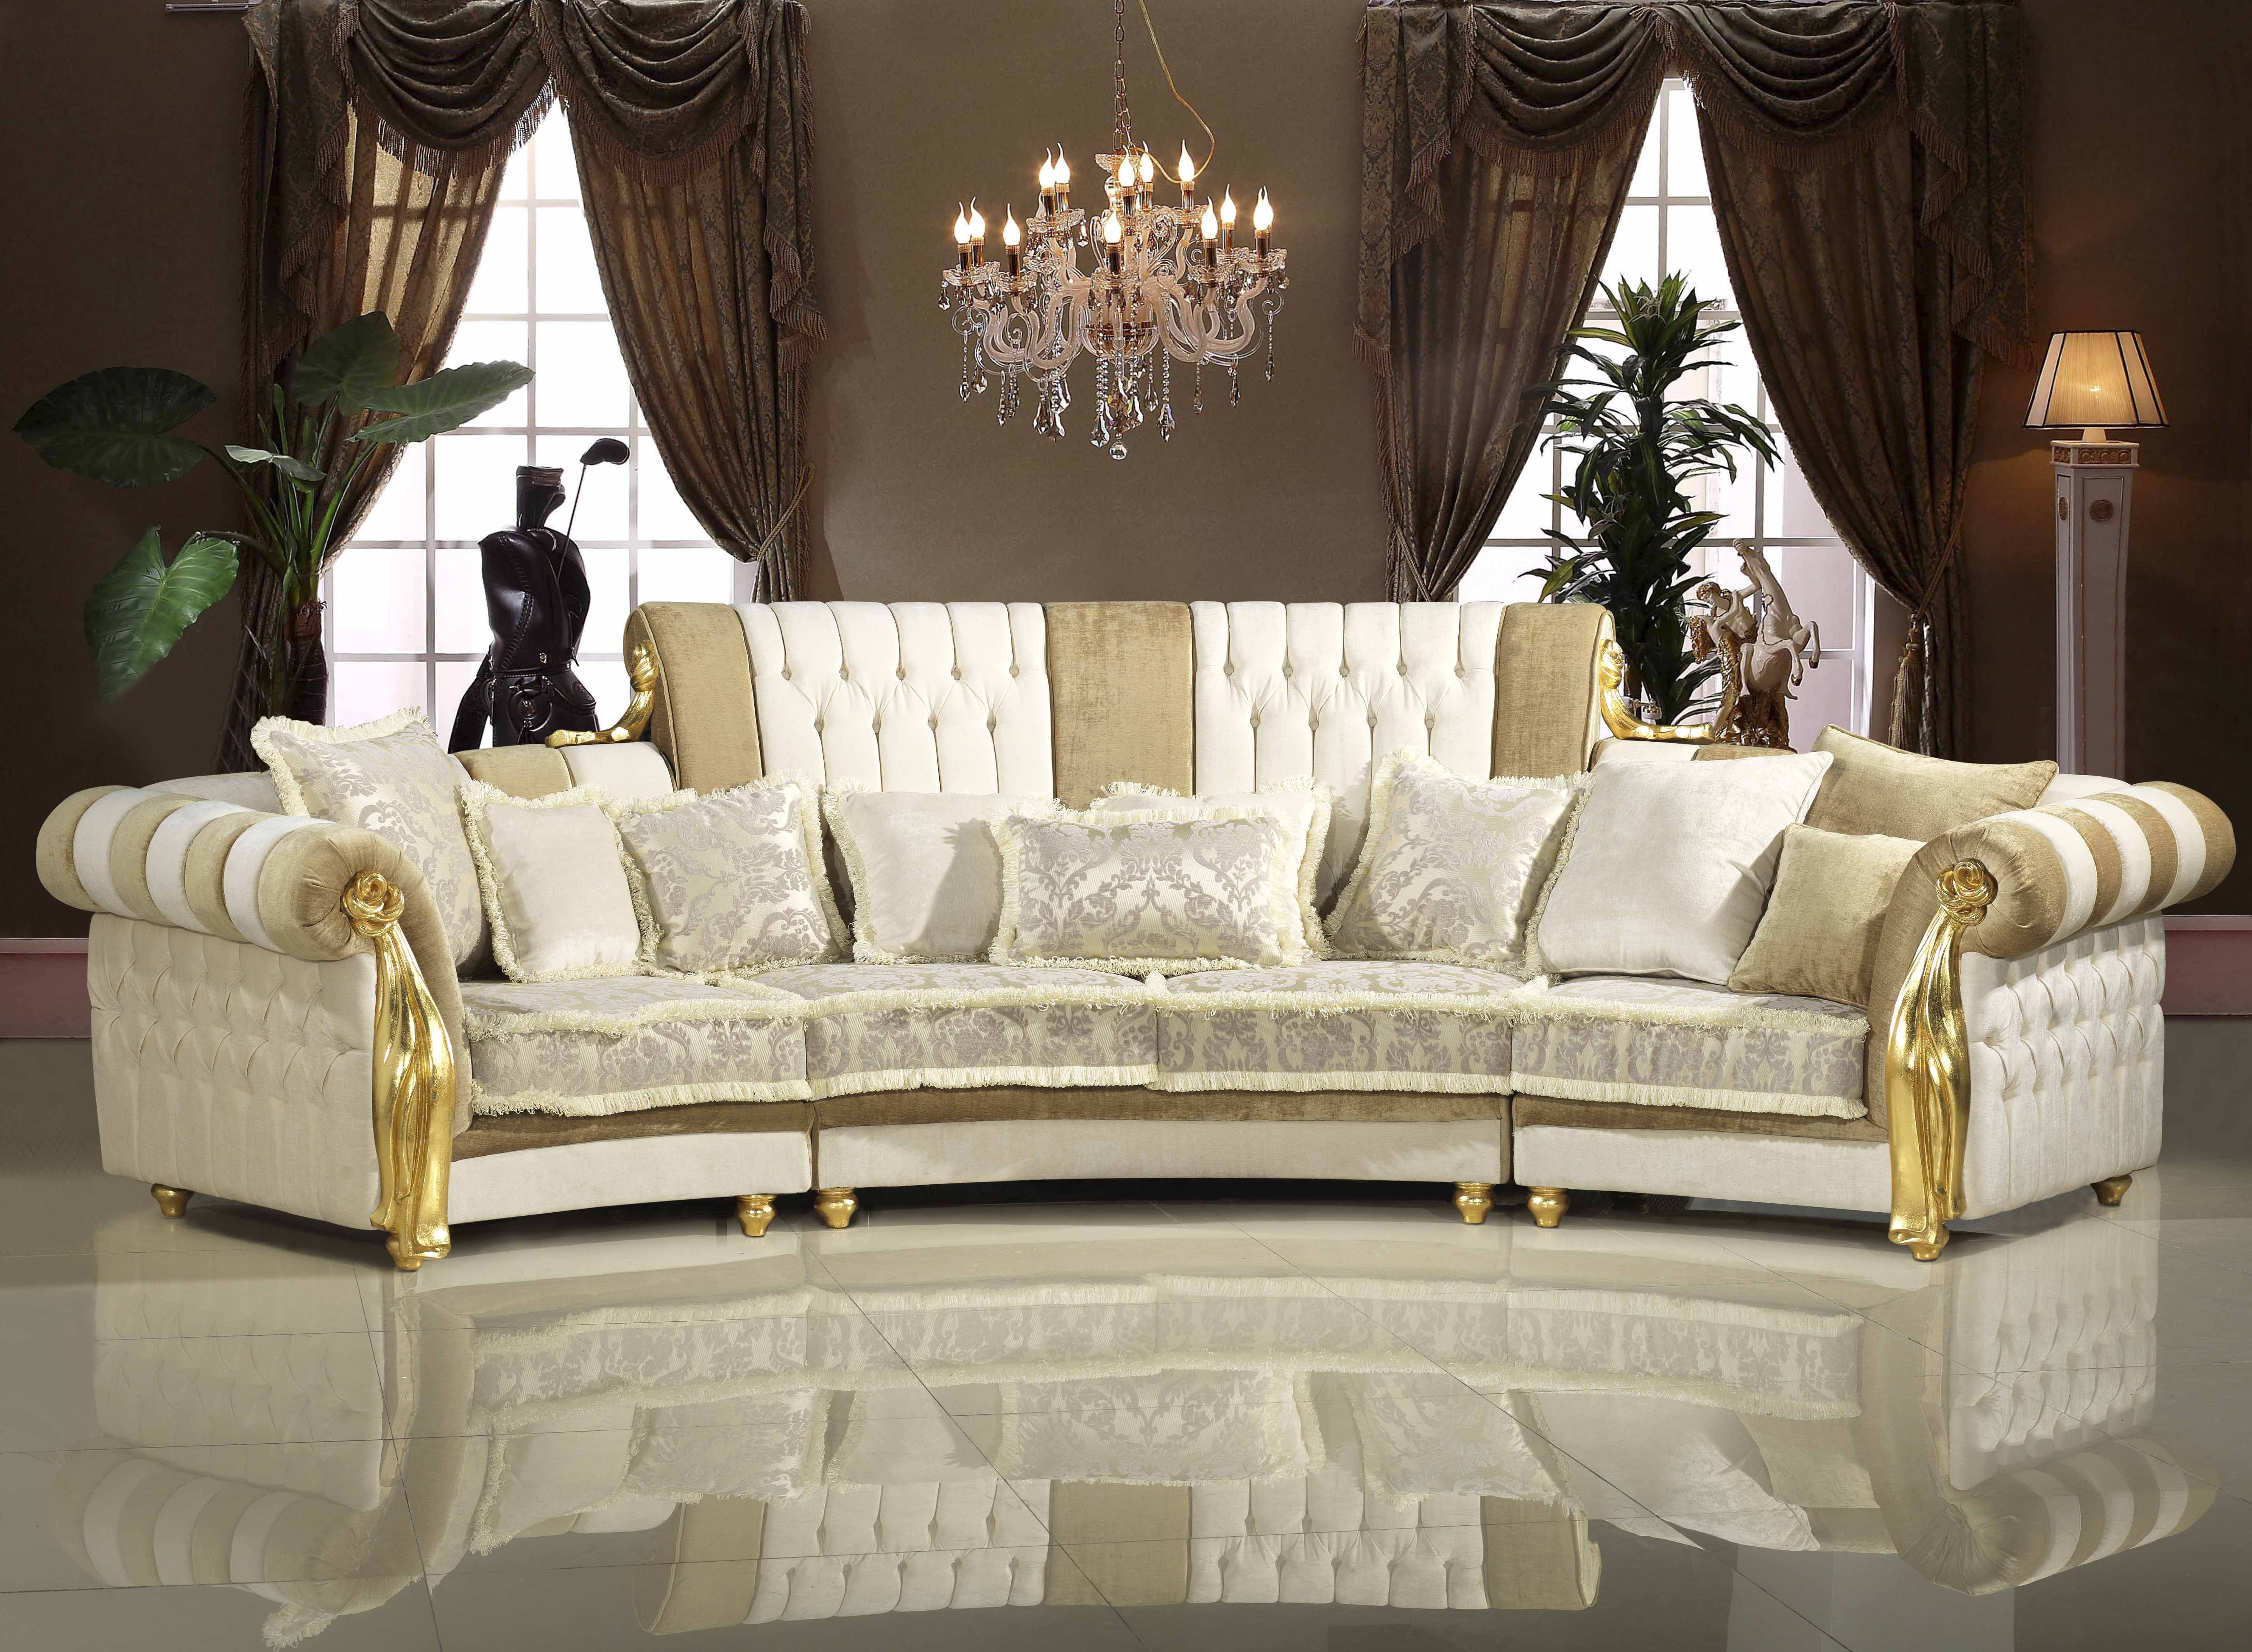 Most Expensive Couch In 2020 Luxury Living Room Luxury Furniture Luxury Sofa